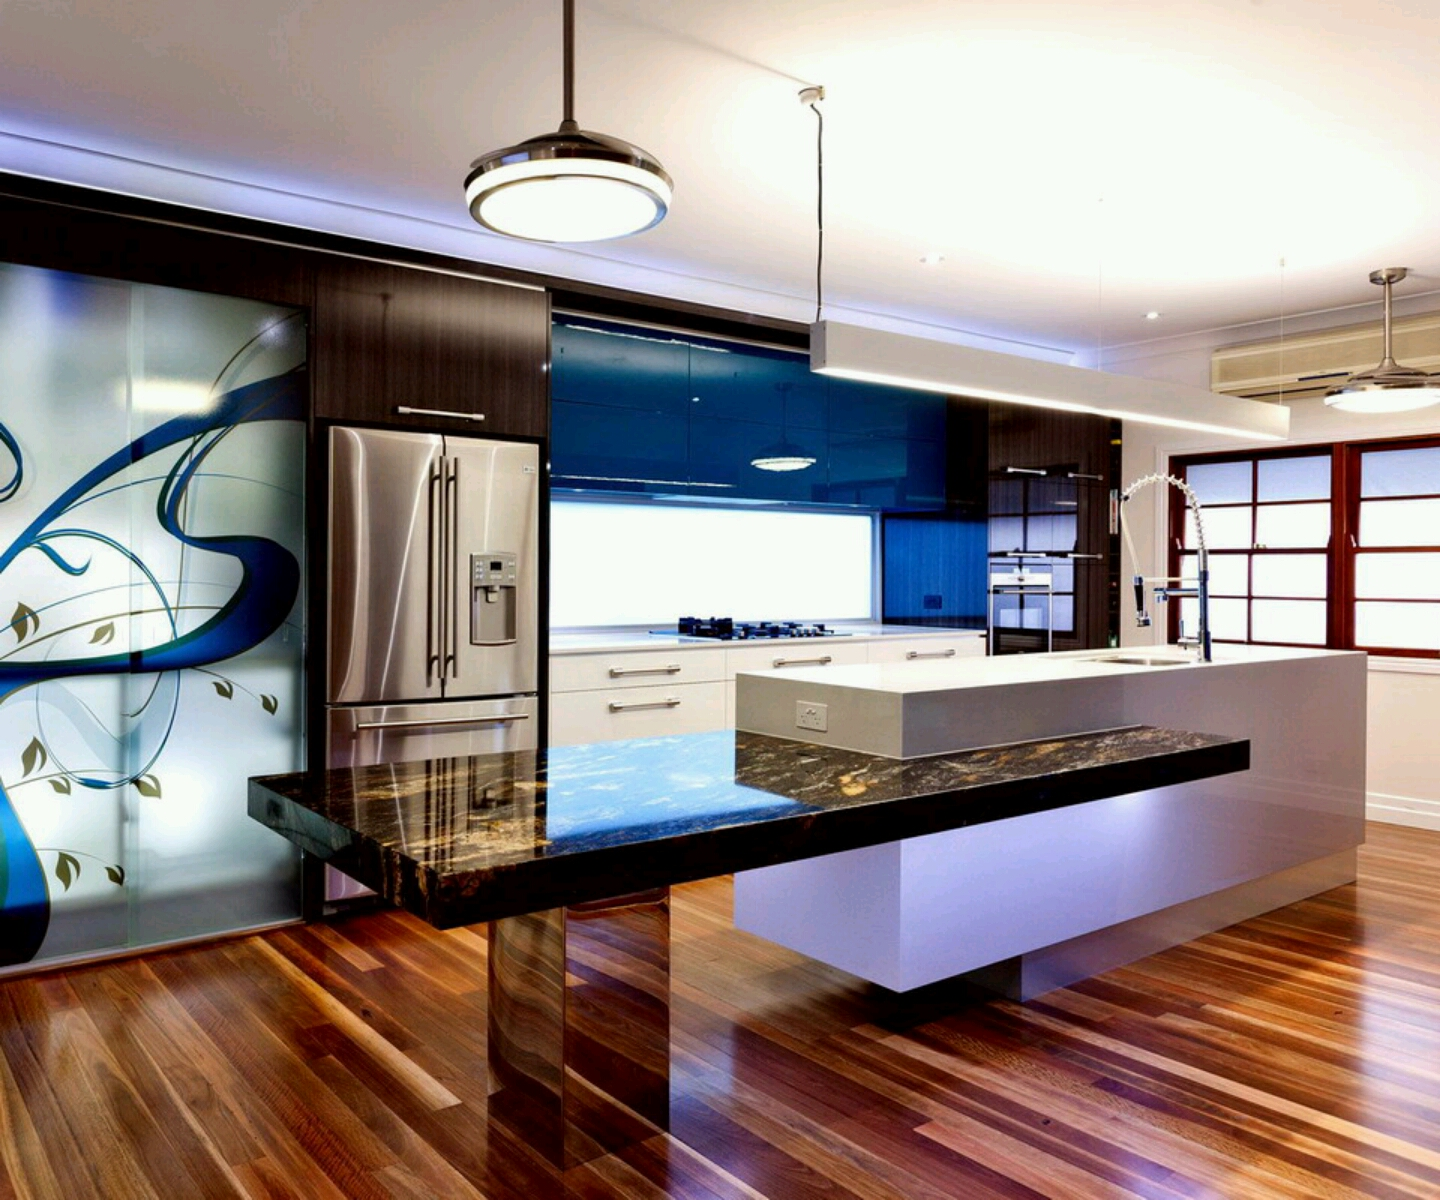 Ultra modern kitchen designs ideas new home designs for New style kitchen design